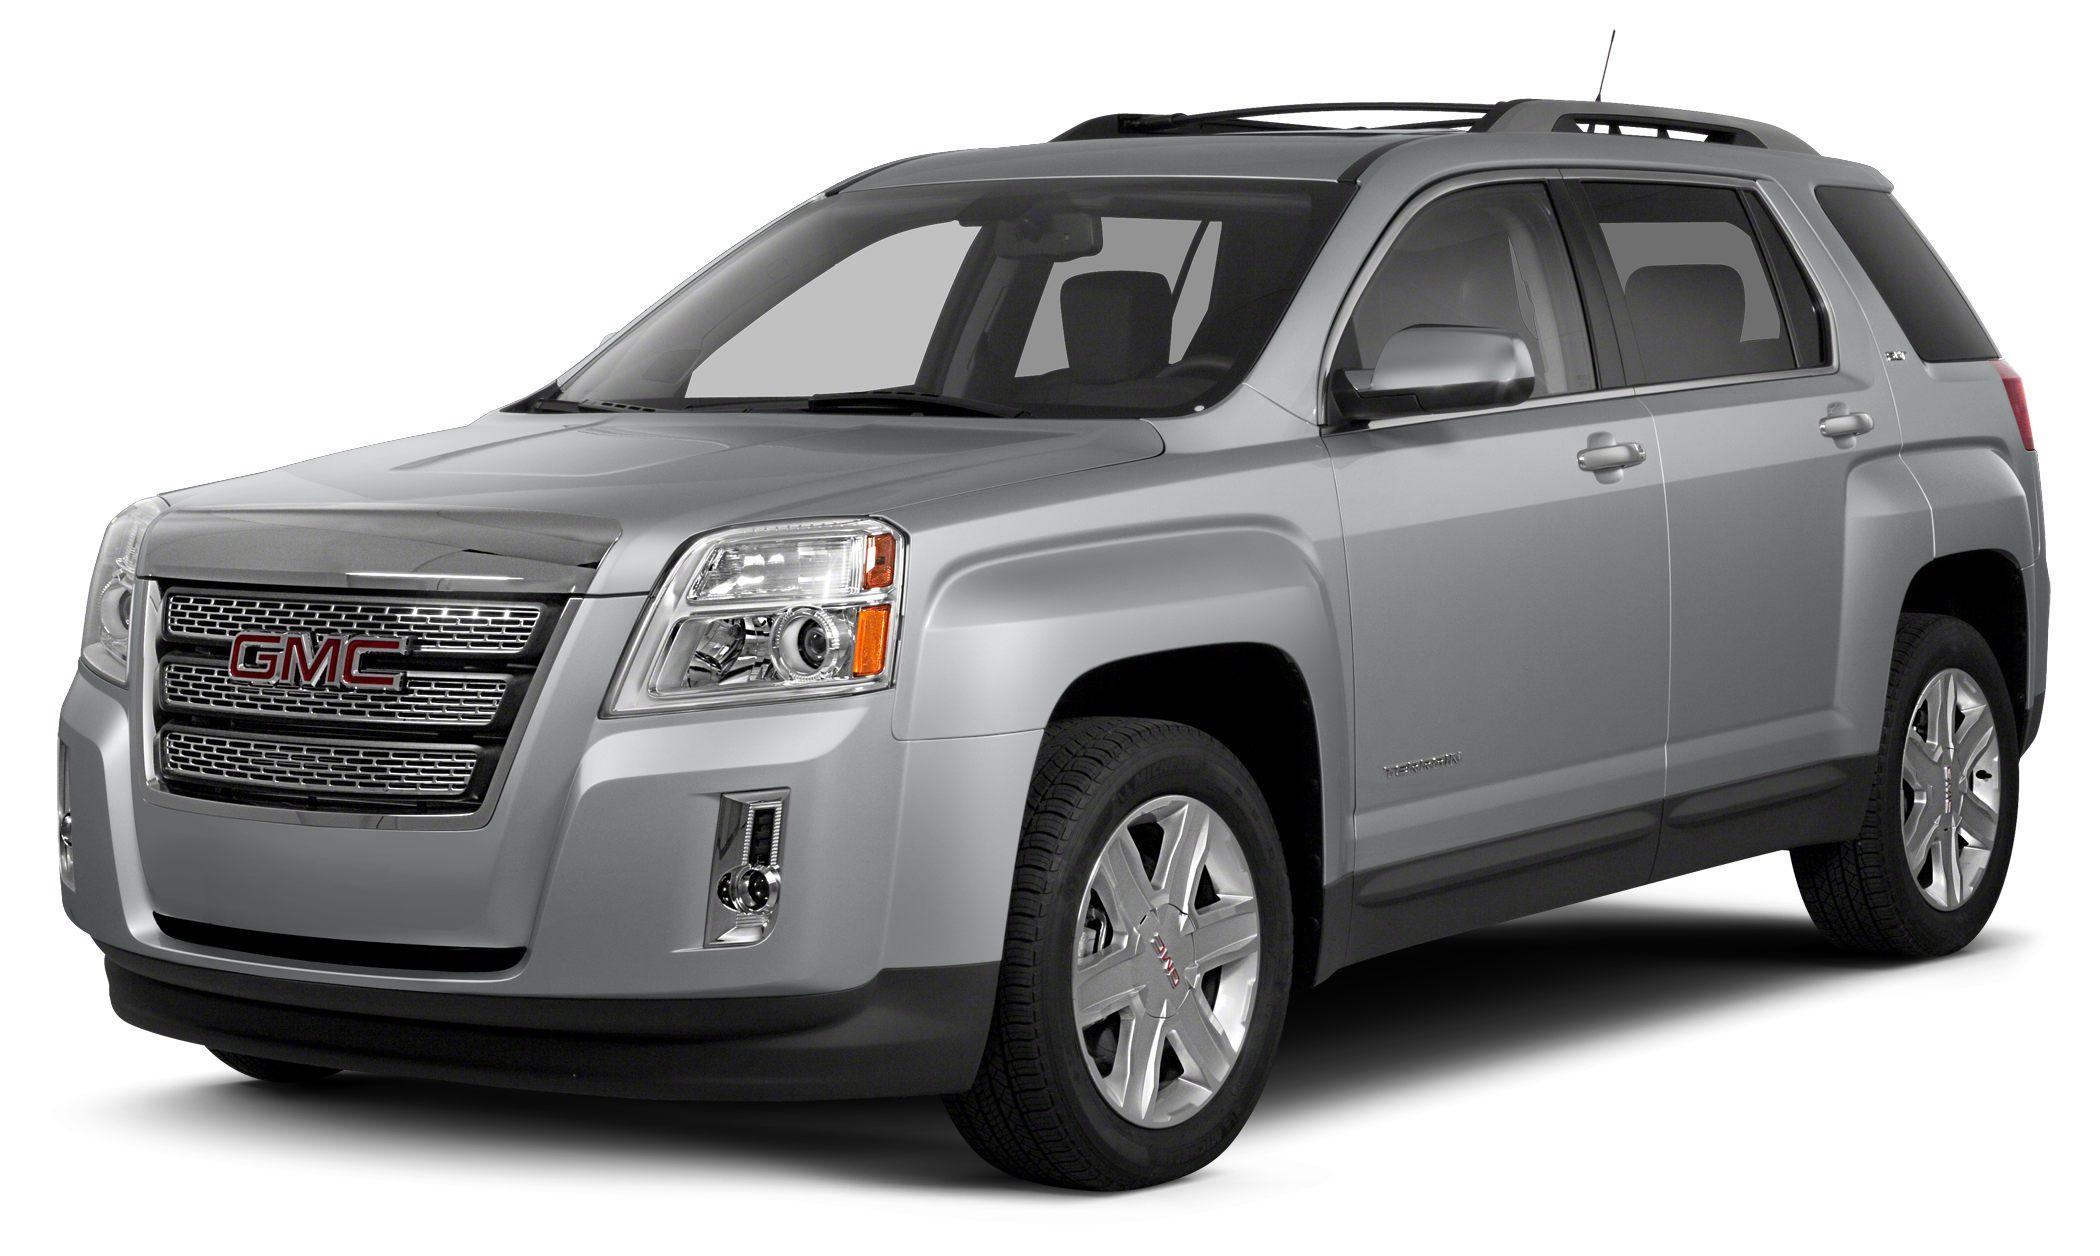 2013 GMC Terrain SLE-1 WAS 19400 1200 below Kelley Blue Book FUEL EFFICIENT 32 MPG Hwy22 M